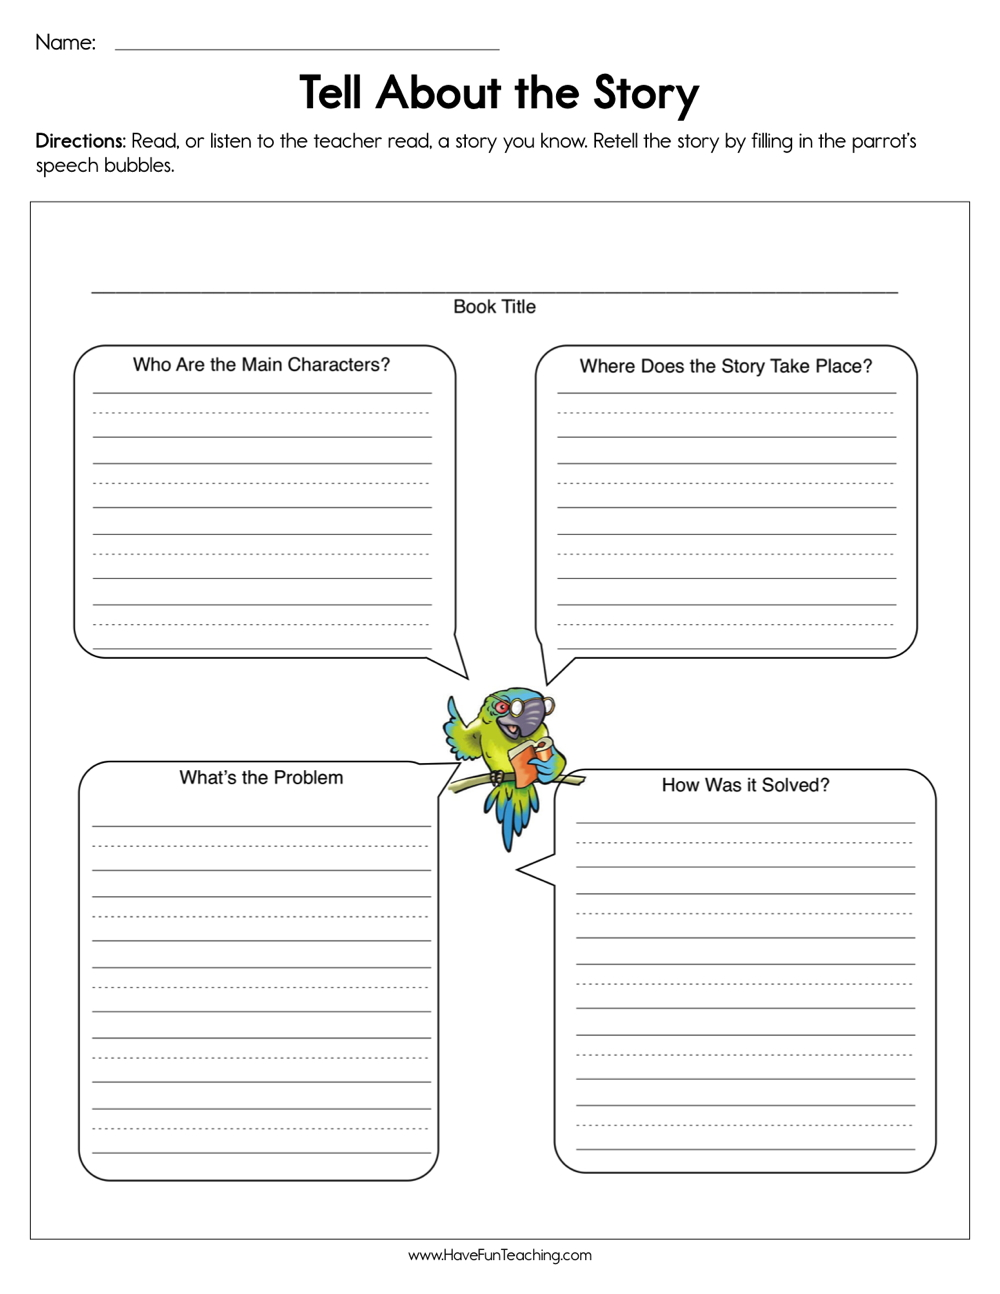 Tell About the Story Worksheet